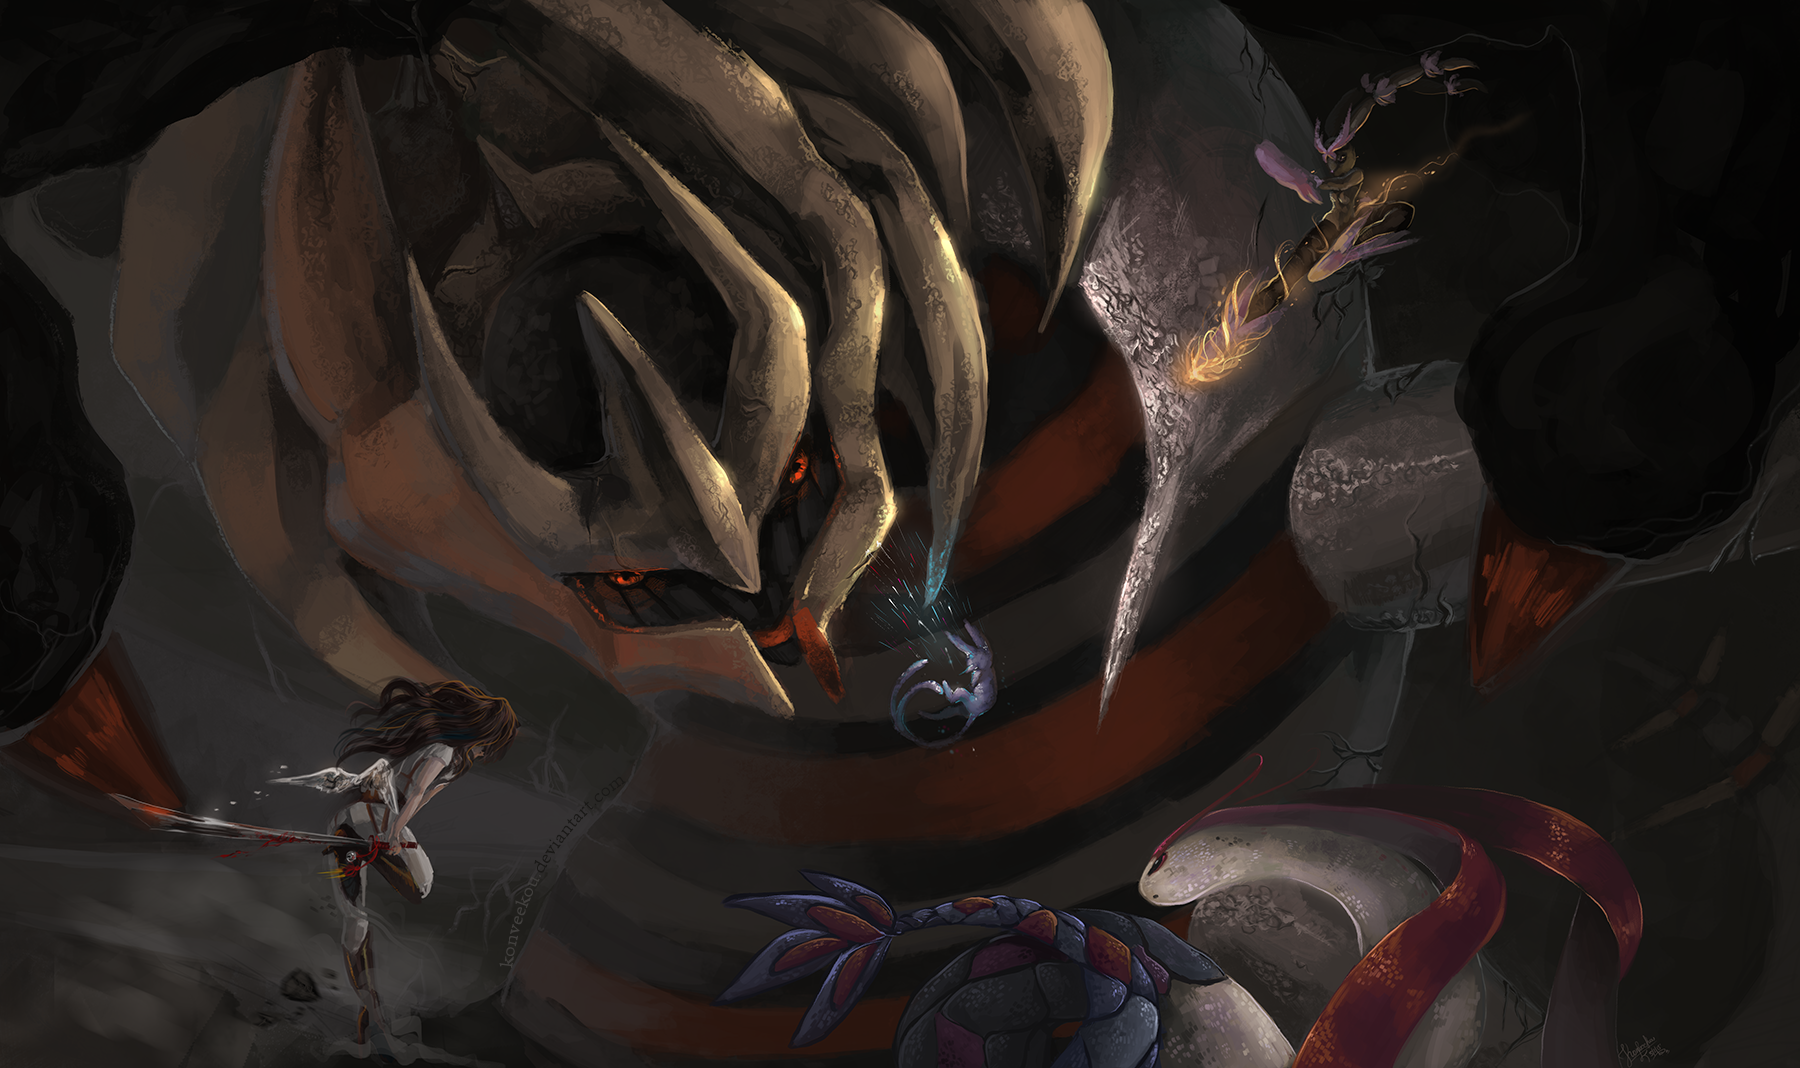 Giratina the Shadow Lord by Konveekou on DeviantArt